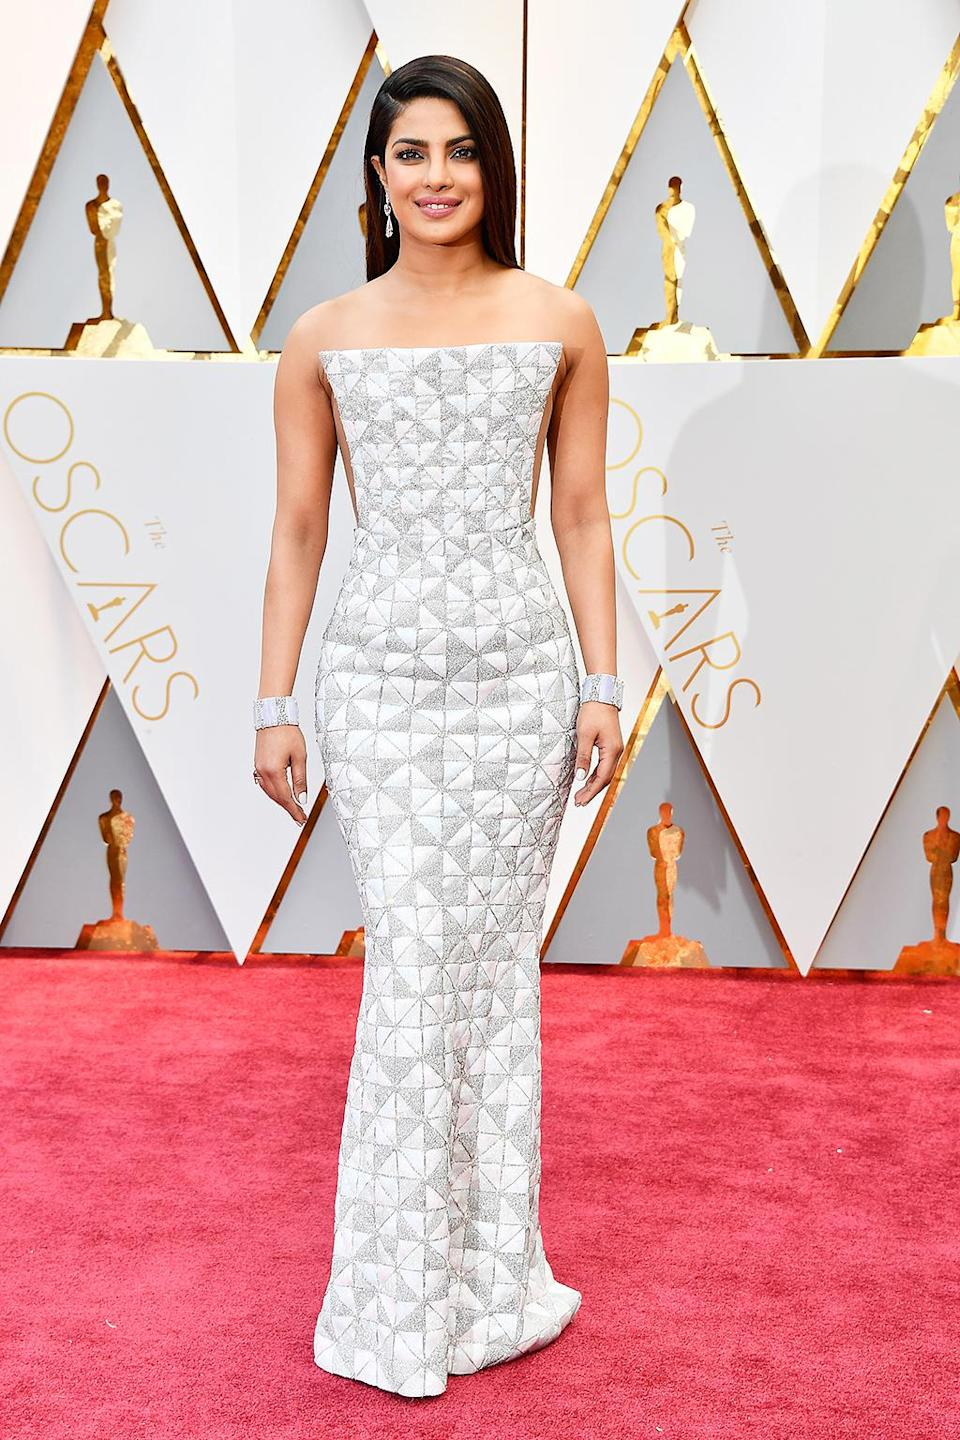 <p>Priyanka Chopra attends the 89th Annual Academy Awards at Hollywood & Highland Center on Feb. 26, 2017. (Photo by Frazer Harrison/Getty Images) </p>